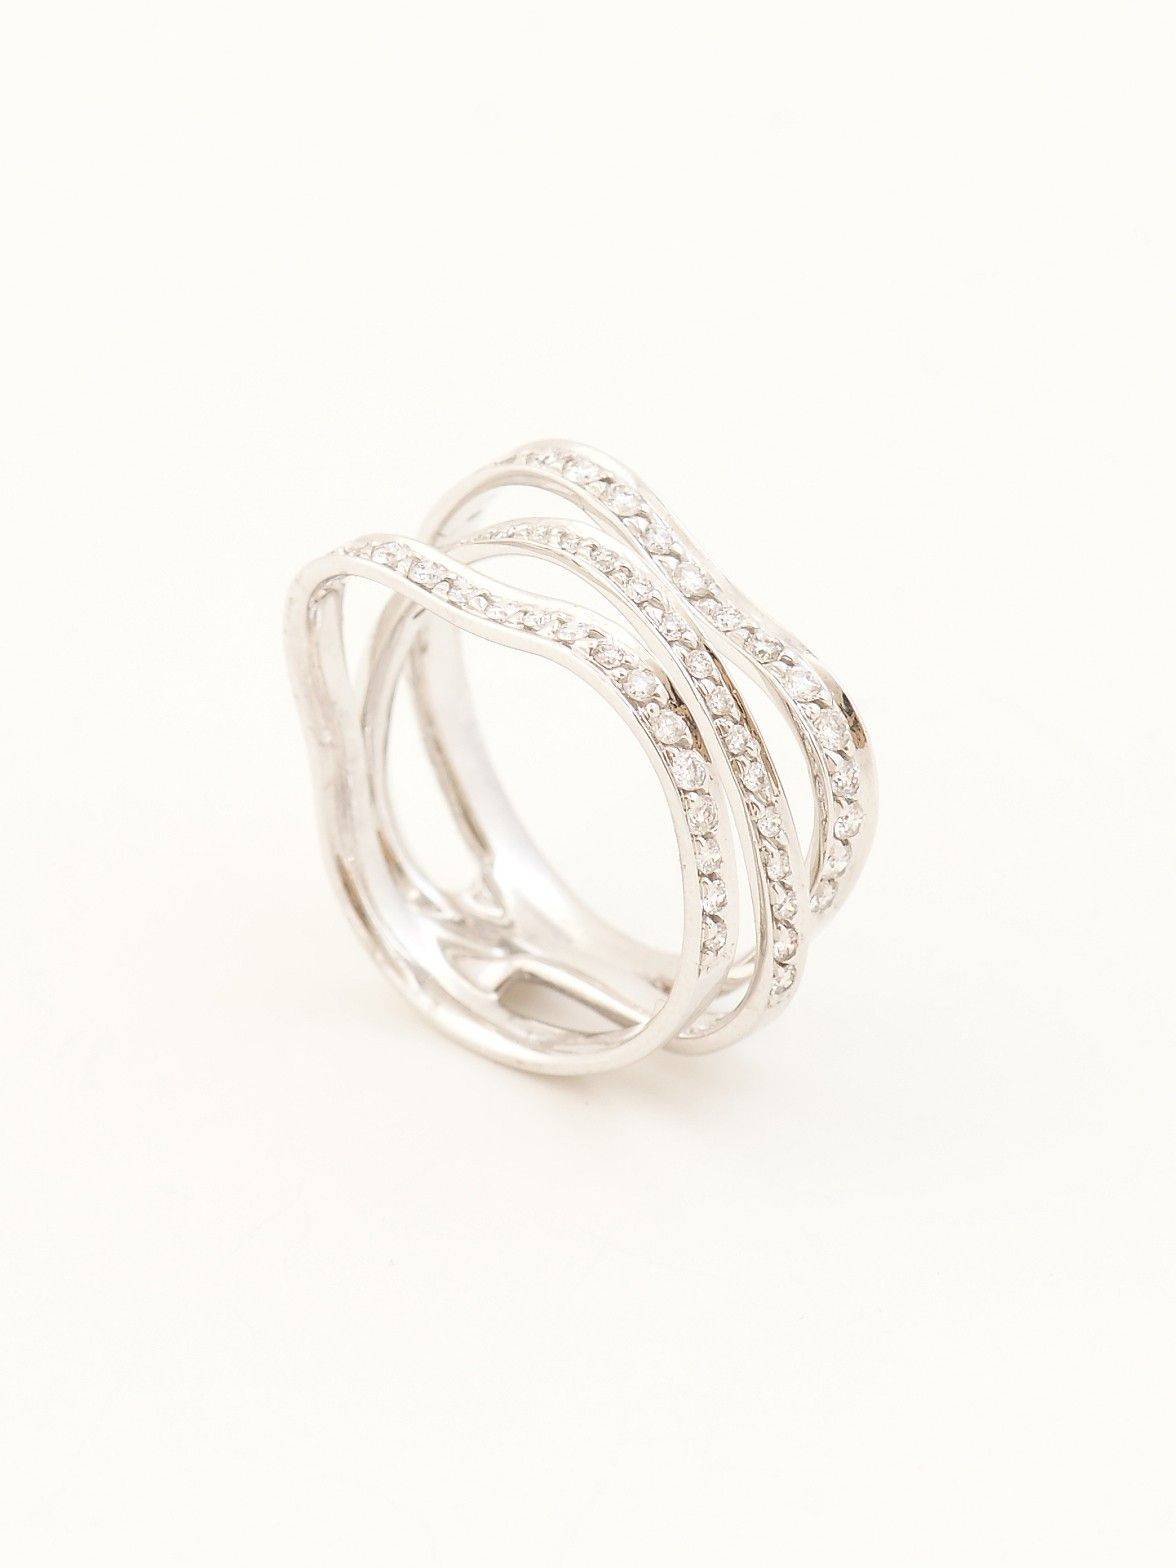 White gold wedding rings at sterns